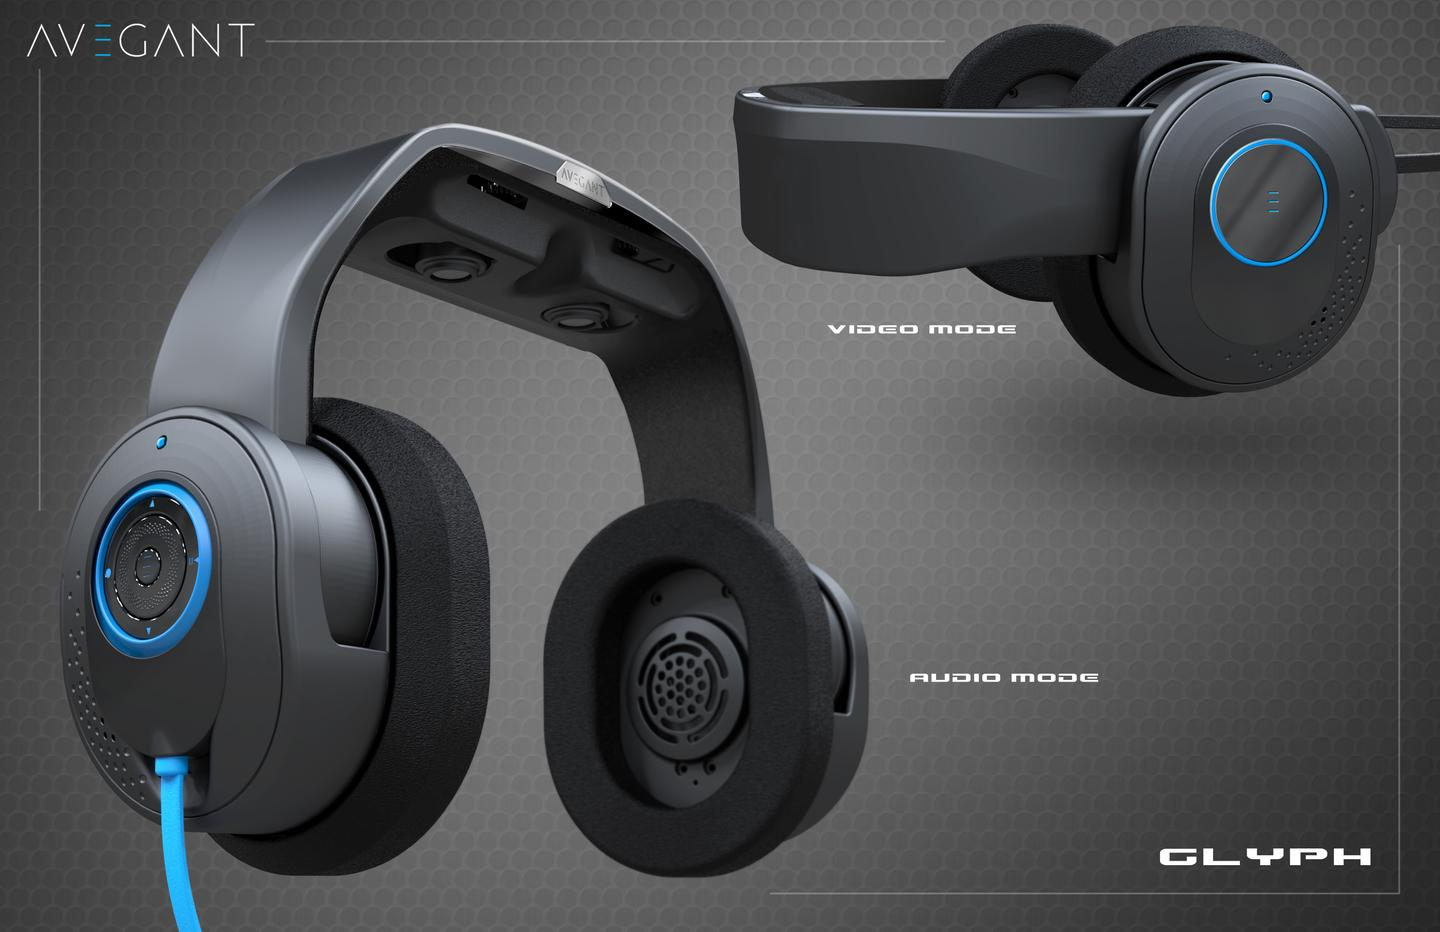 Rendering of the latest Glyph headset design